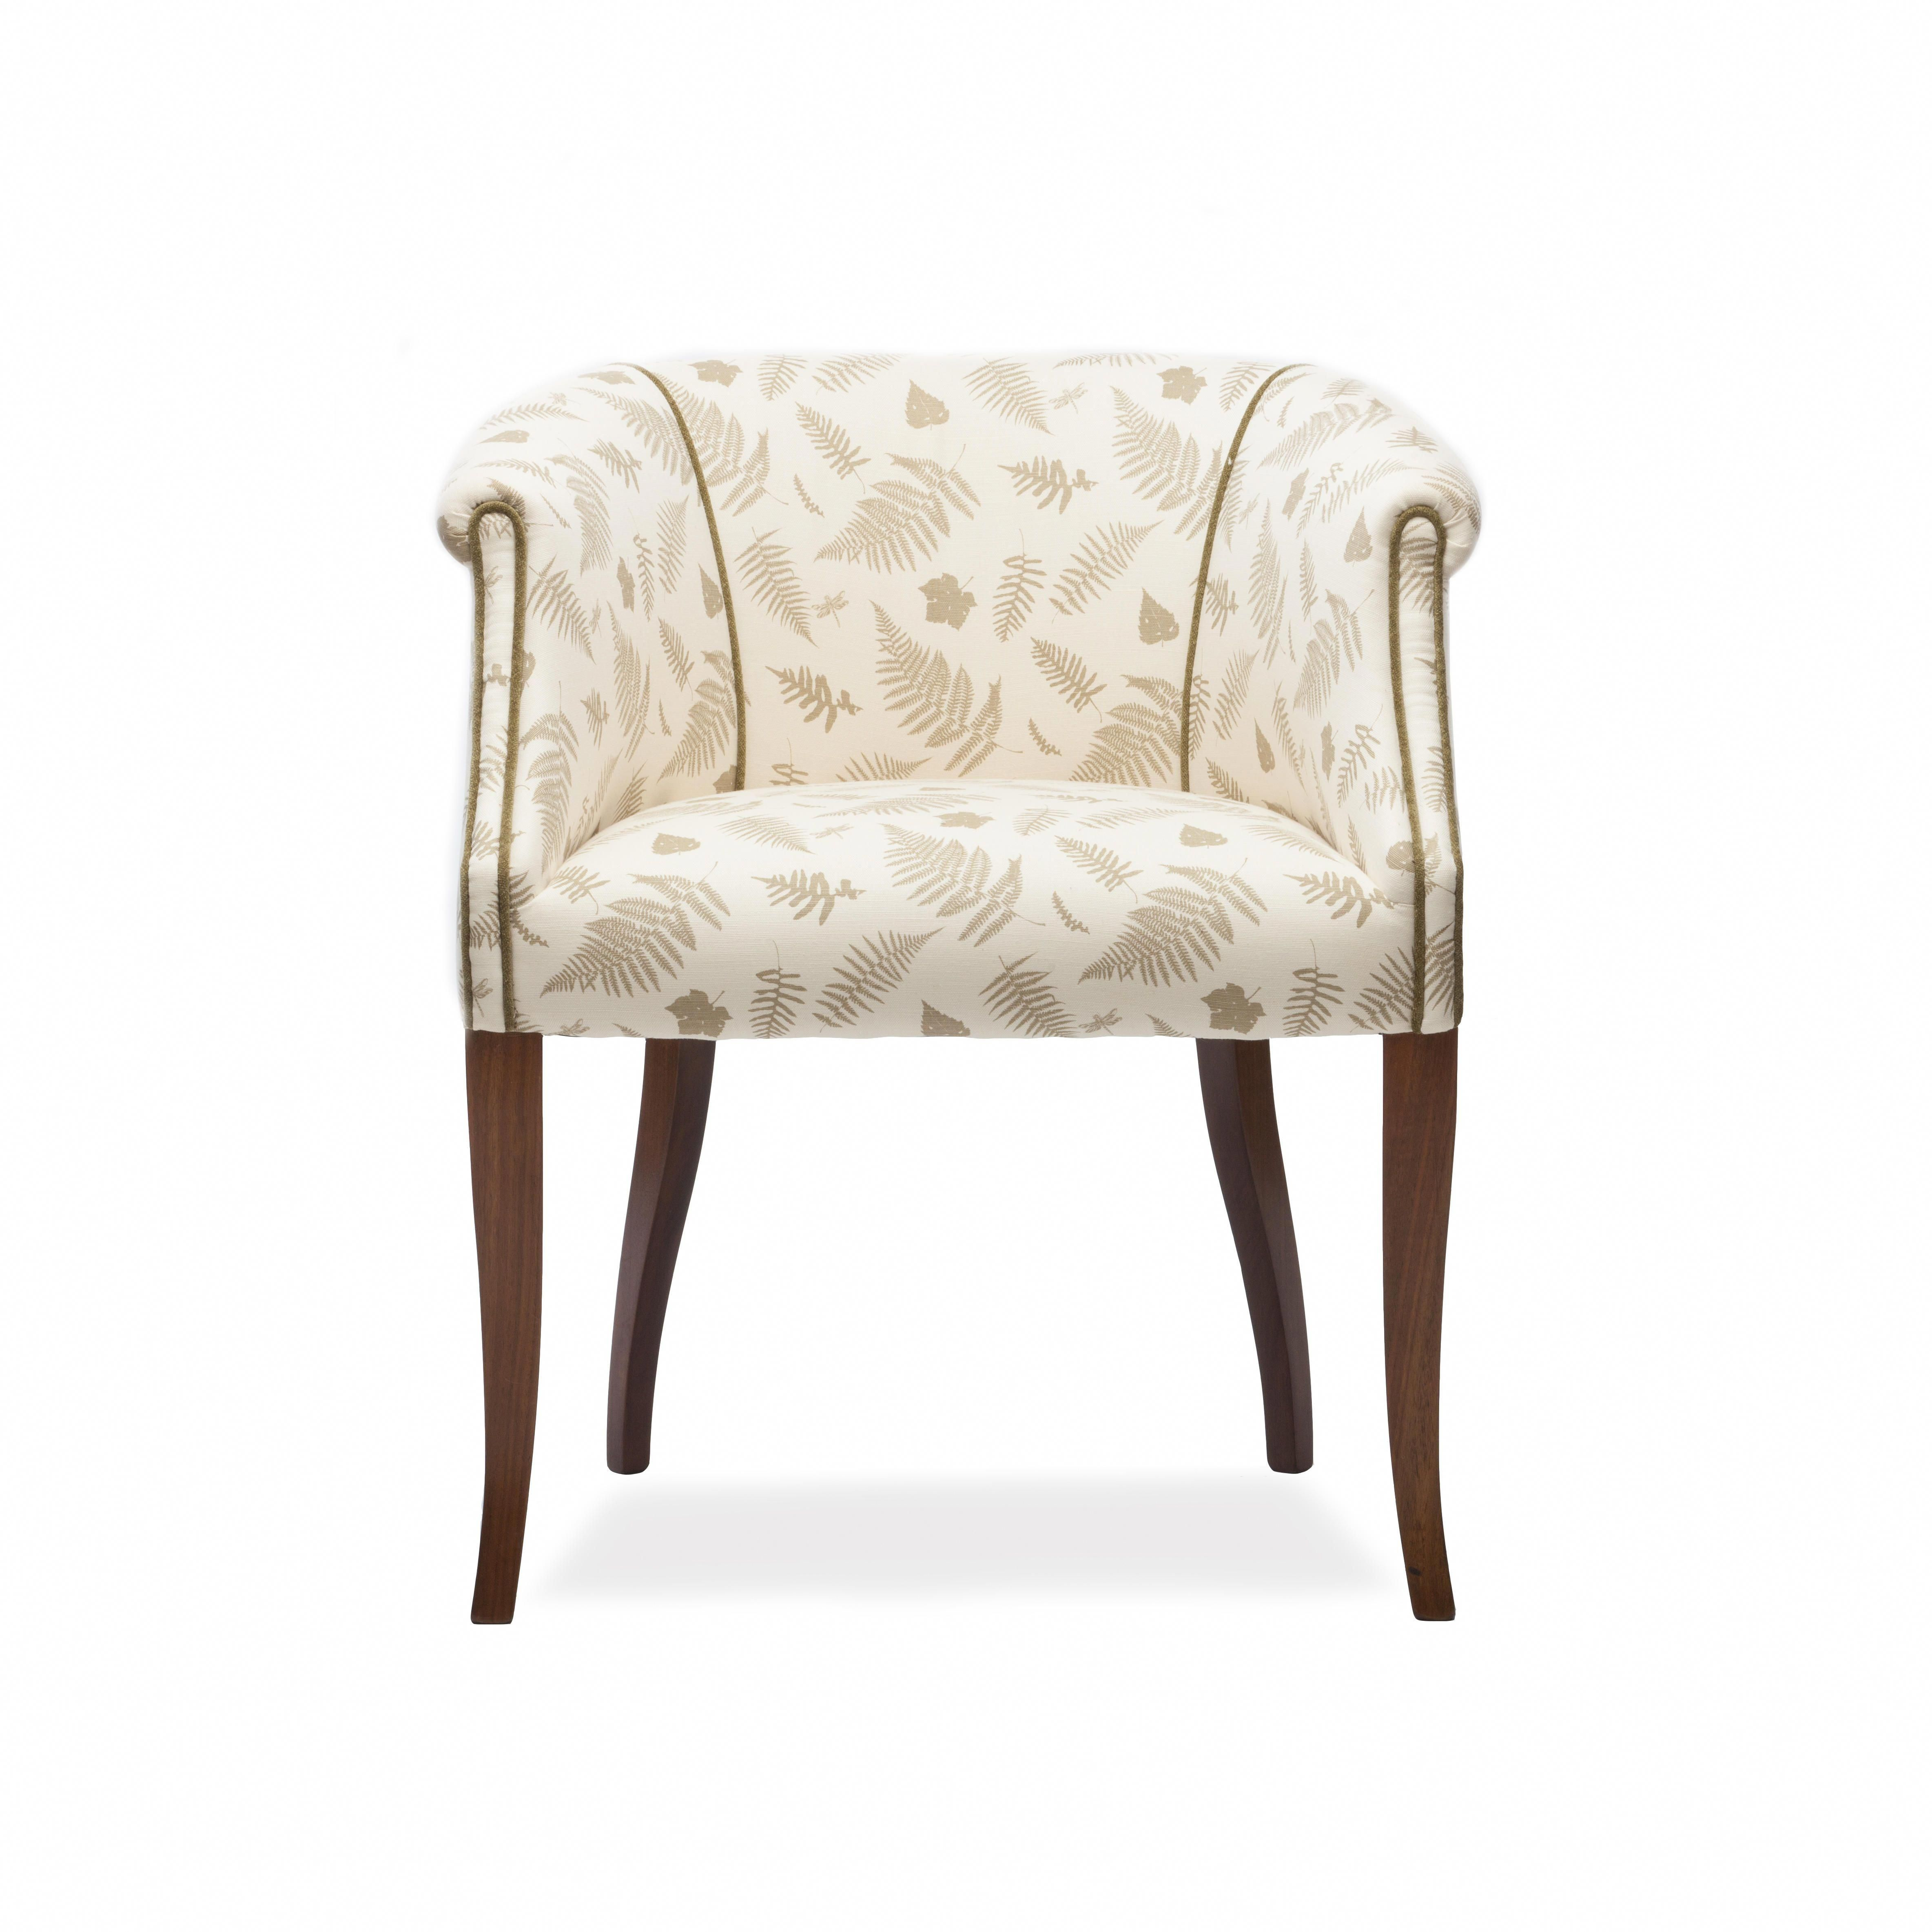 Versatility Bedroom Lounge Chairs The Nancy Chair Was Designed As A Bedroom Chair But Has Been Placed In  Hallways, Lounges And Studies So Is Very Versatile. It Has A Soft Scroll  Edge With ...